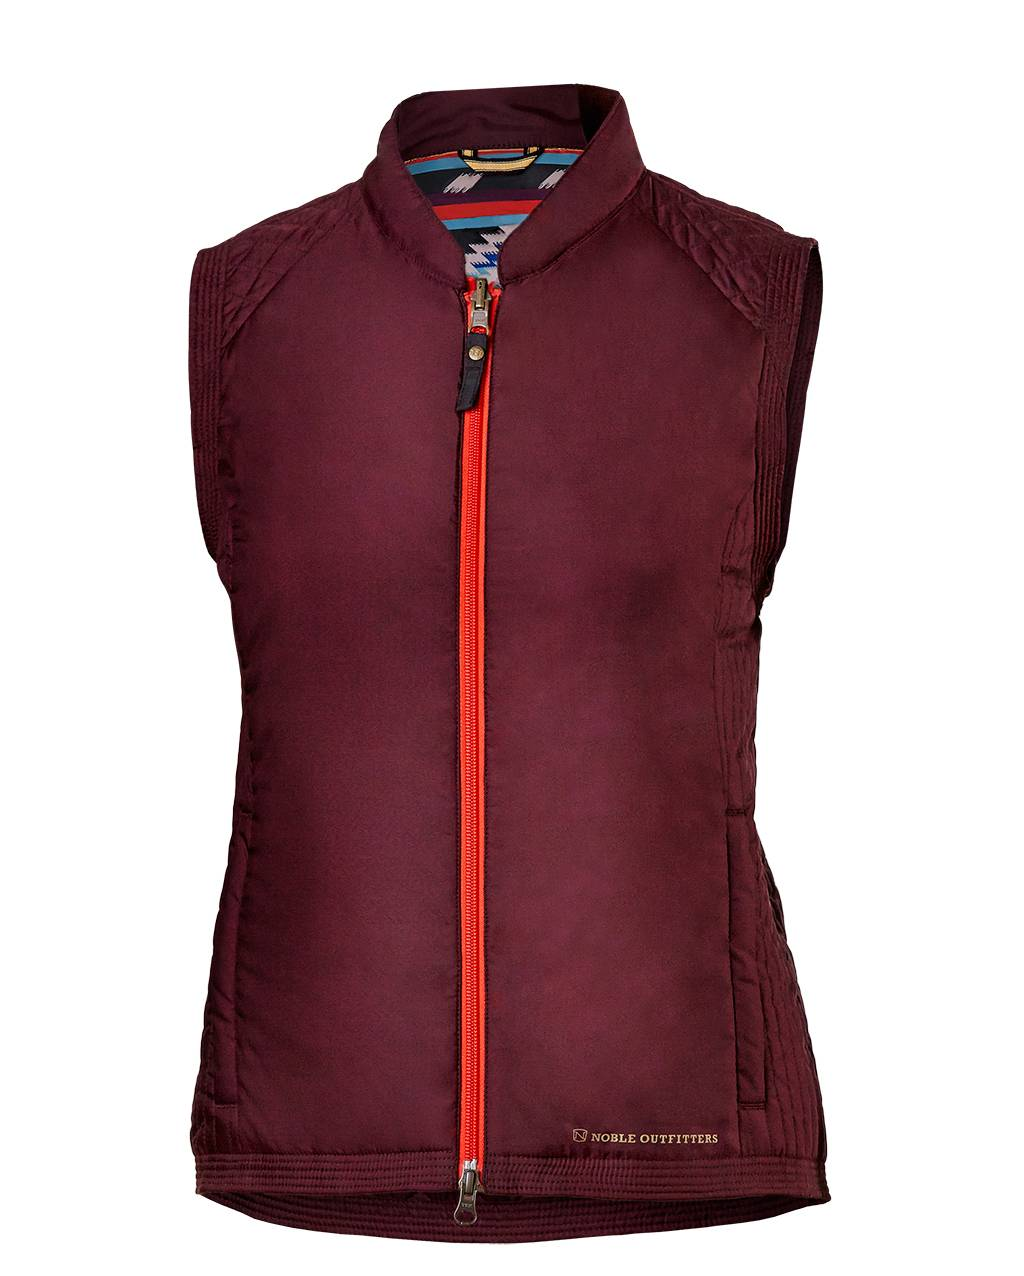 Noble Outfitters Rollback Reversible Vest